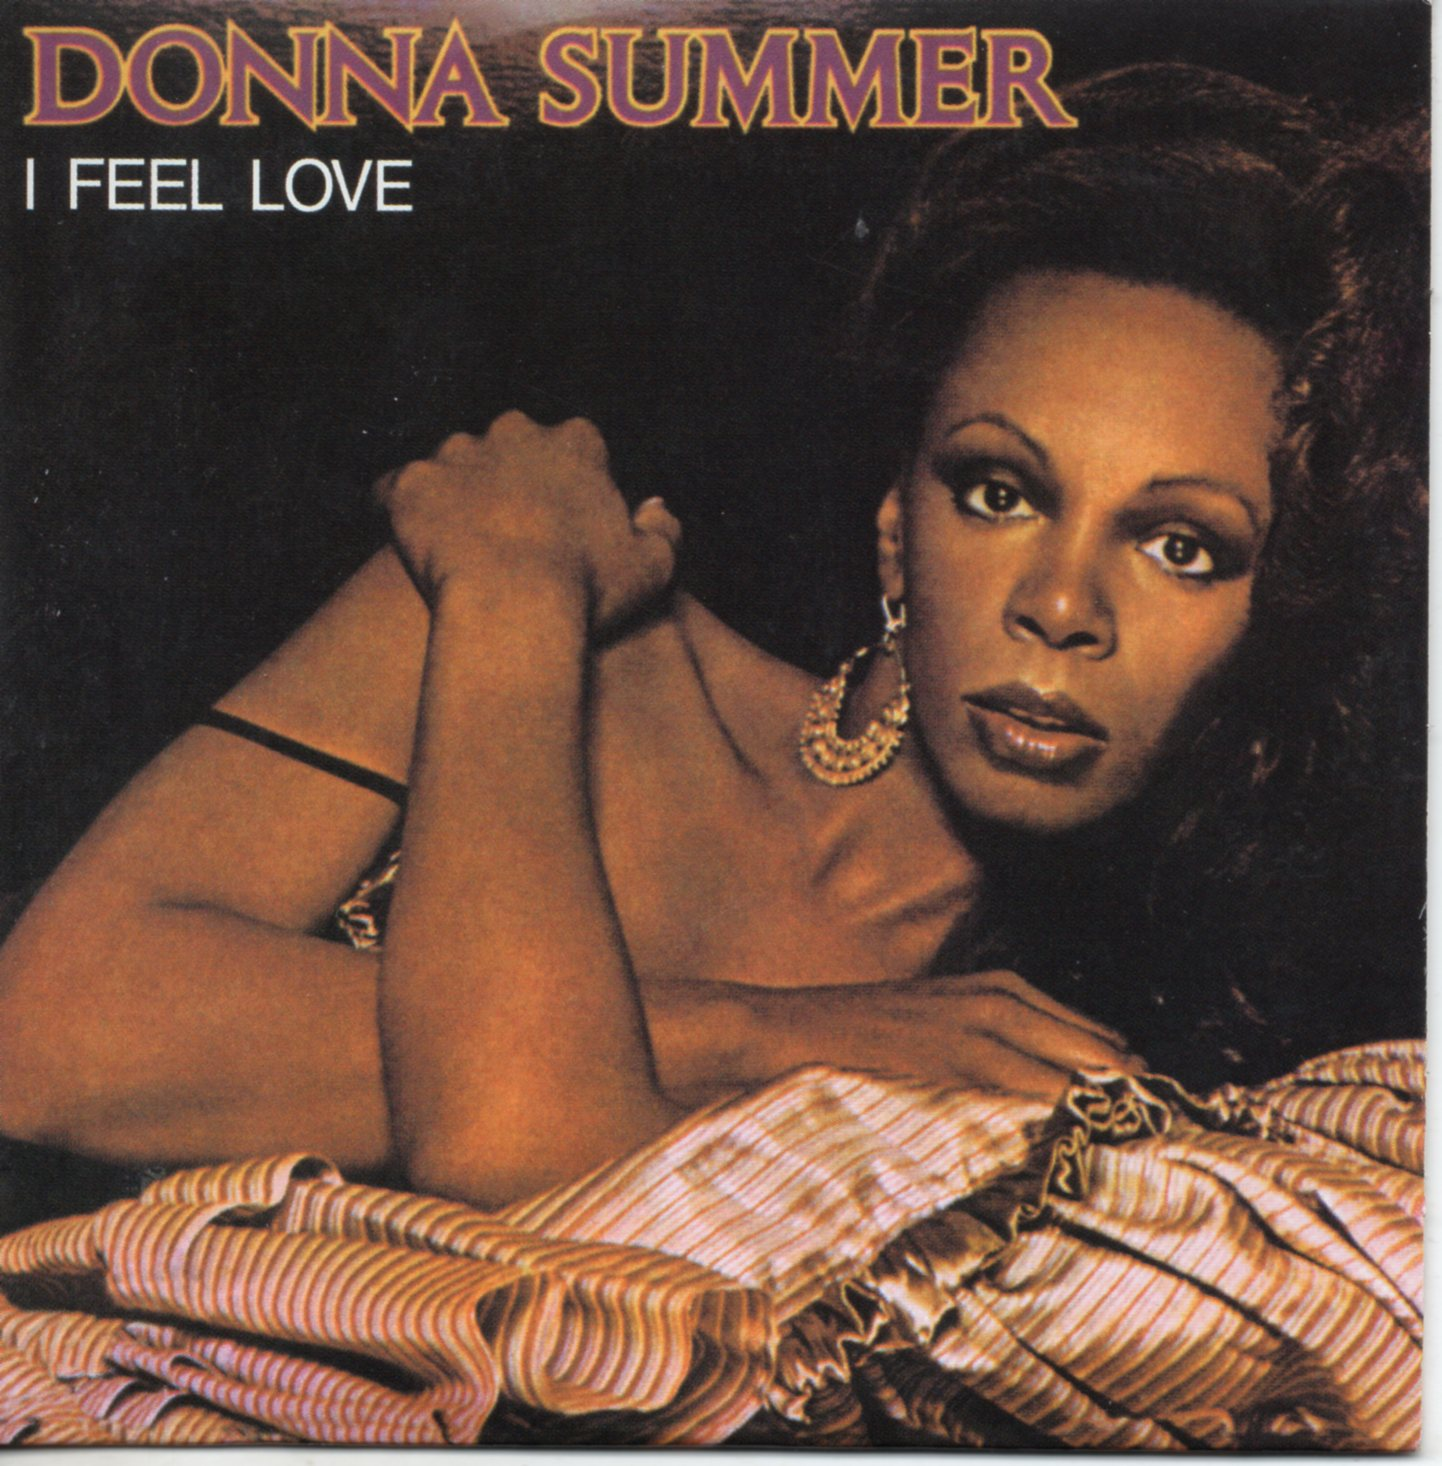 DONNA SUMMER - I feel love - Strictly Ltd numbered edition card sleeve - 70s french Sleeve ! 2-Track - CD single